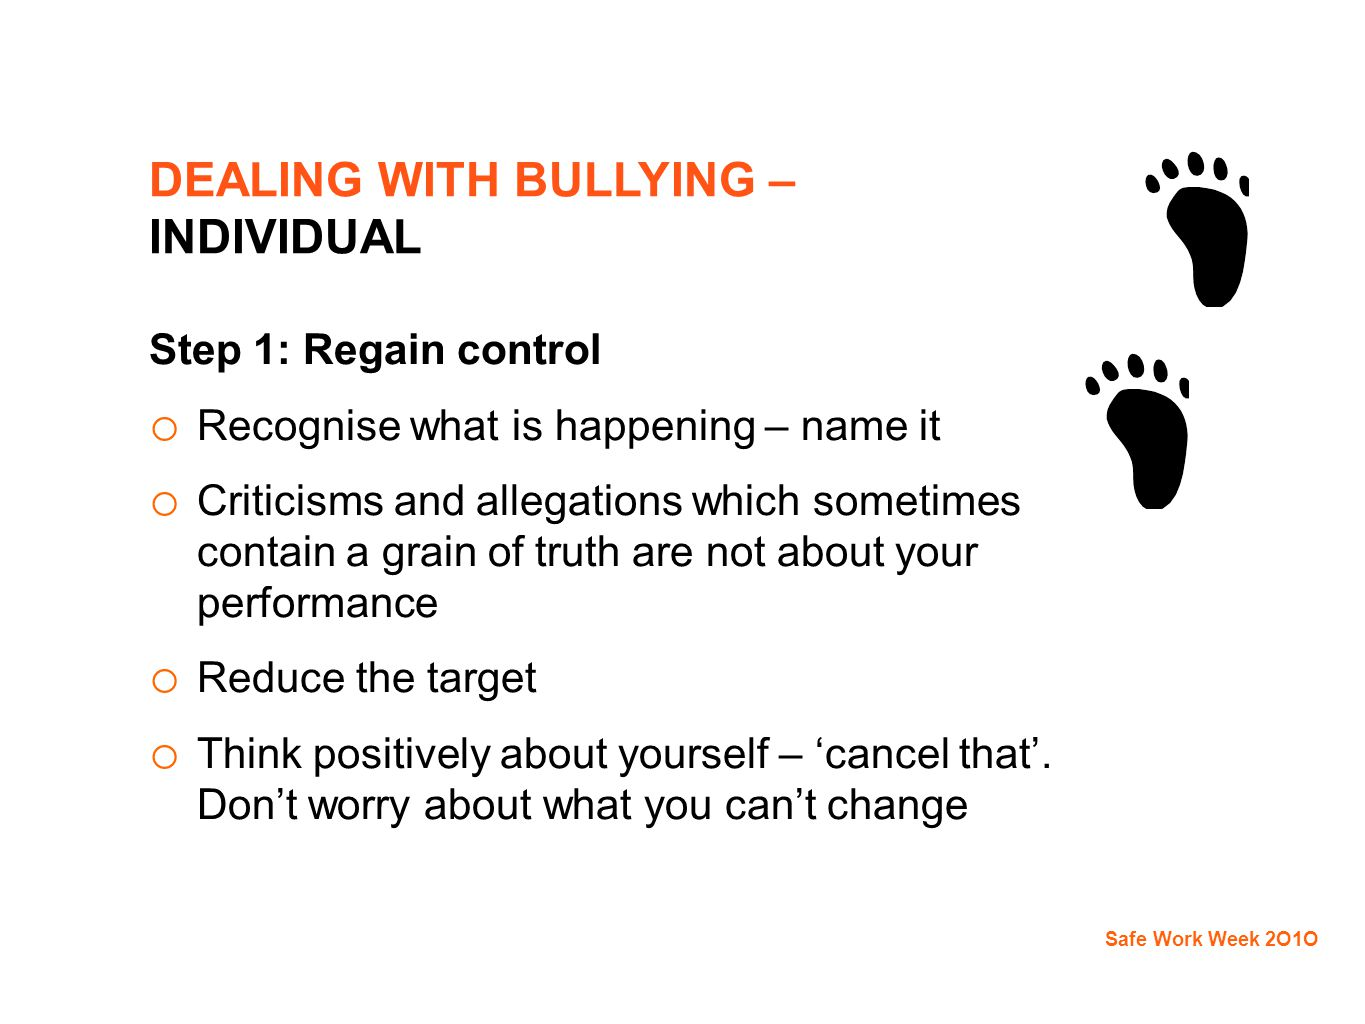 DEALING WITH BULLYING – INDIVIDUAL Step 1: Regain control o Recognise what is happening – name it o Criticisms and allegations which sometimes contain a grain of truth are not about your performance o Reduce the target o Think positively about yourself – 'cancel that'.